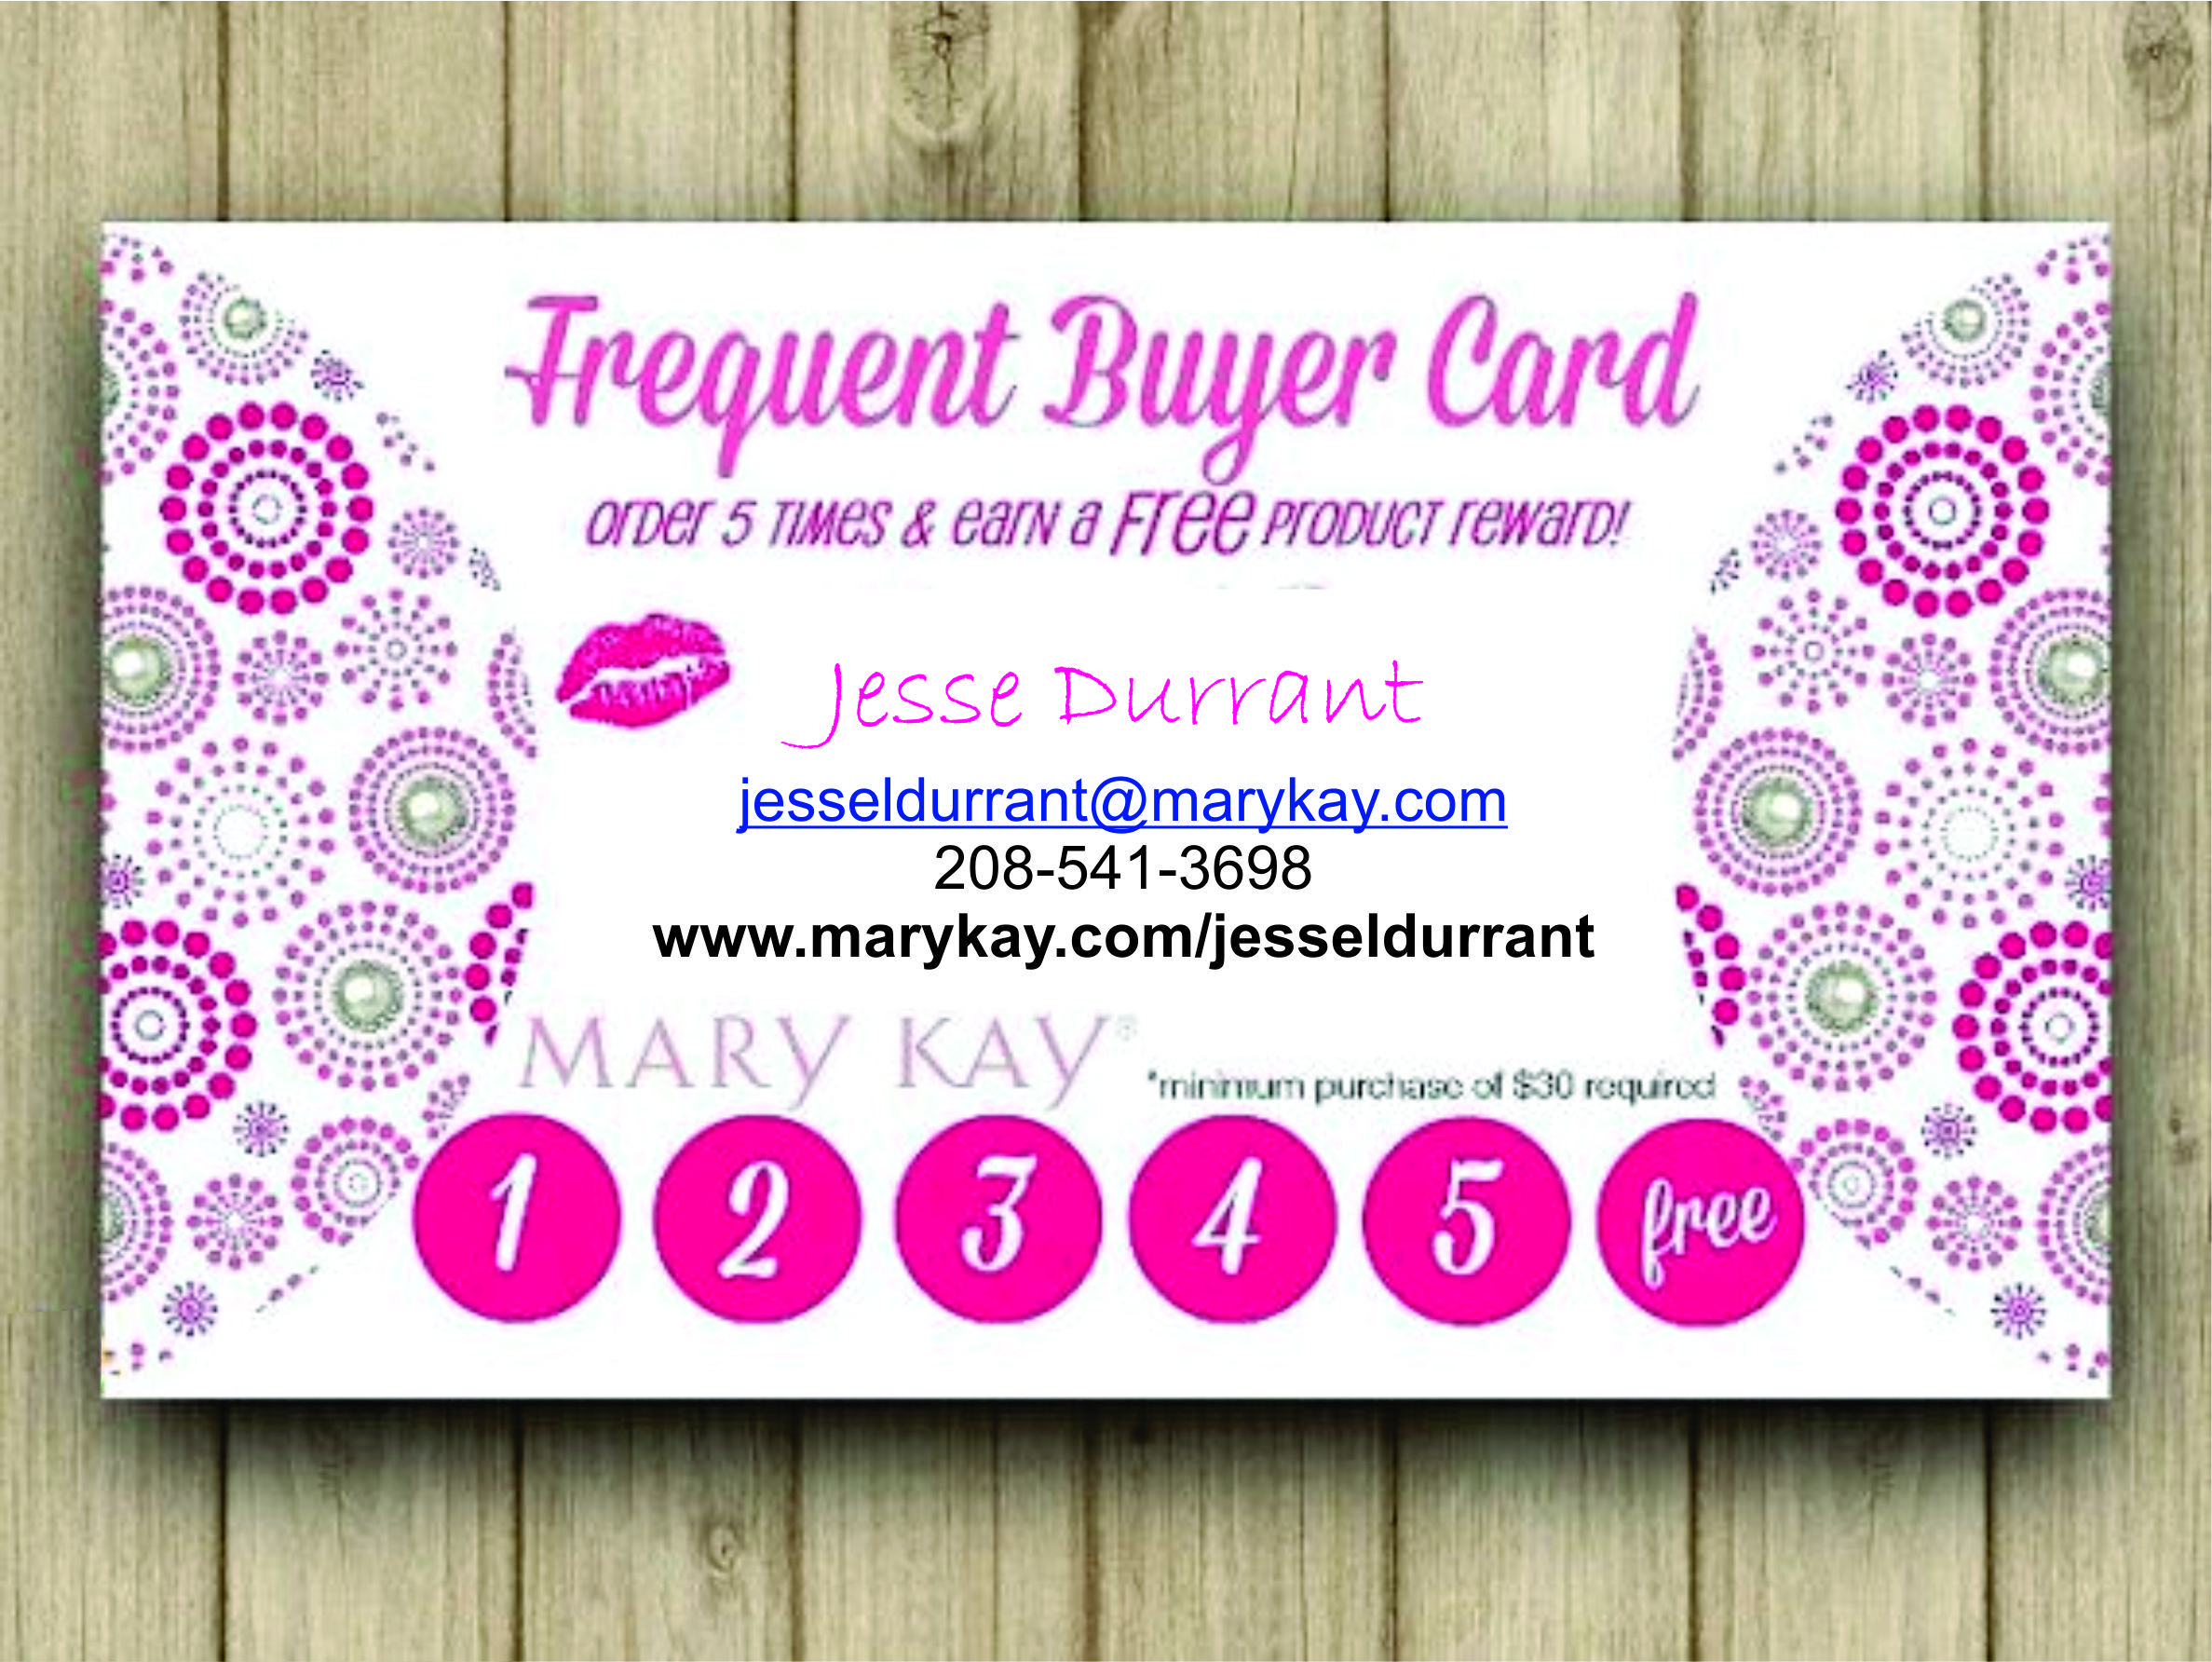 Frequent Buyer Card!!! Earn Free Product When You Register To Be A - Free Printable Mary Kay Business Cards